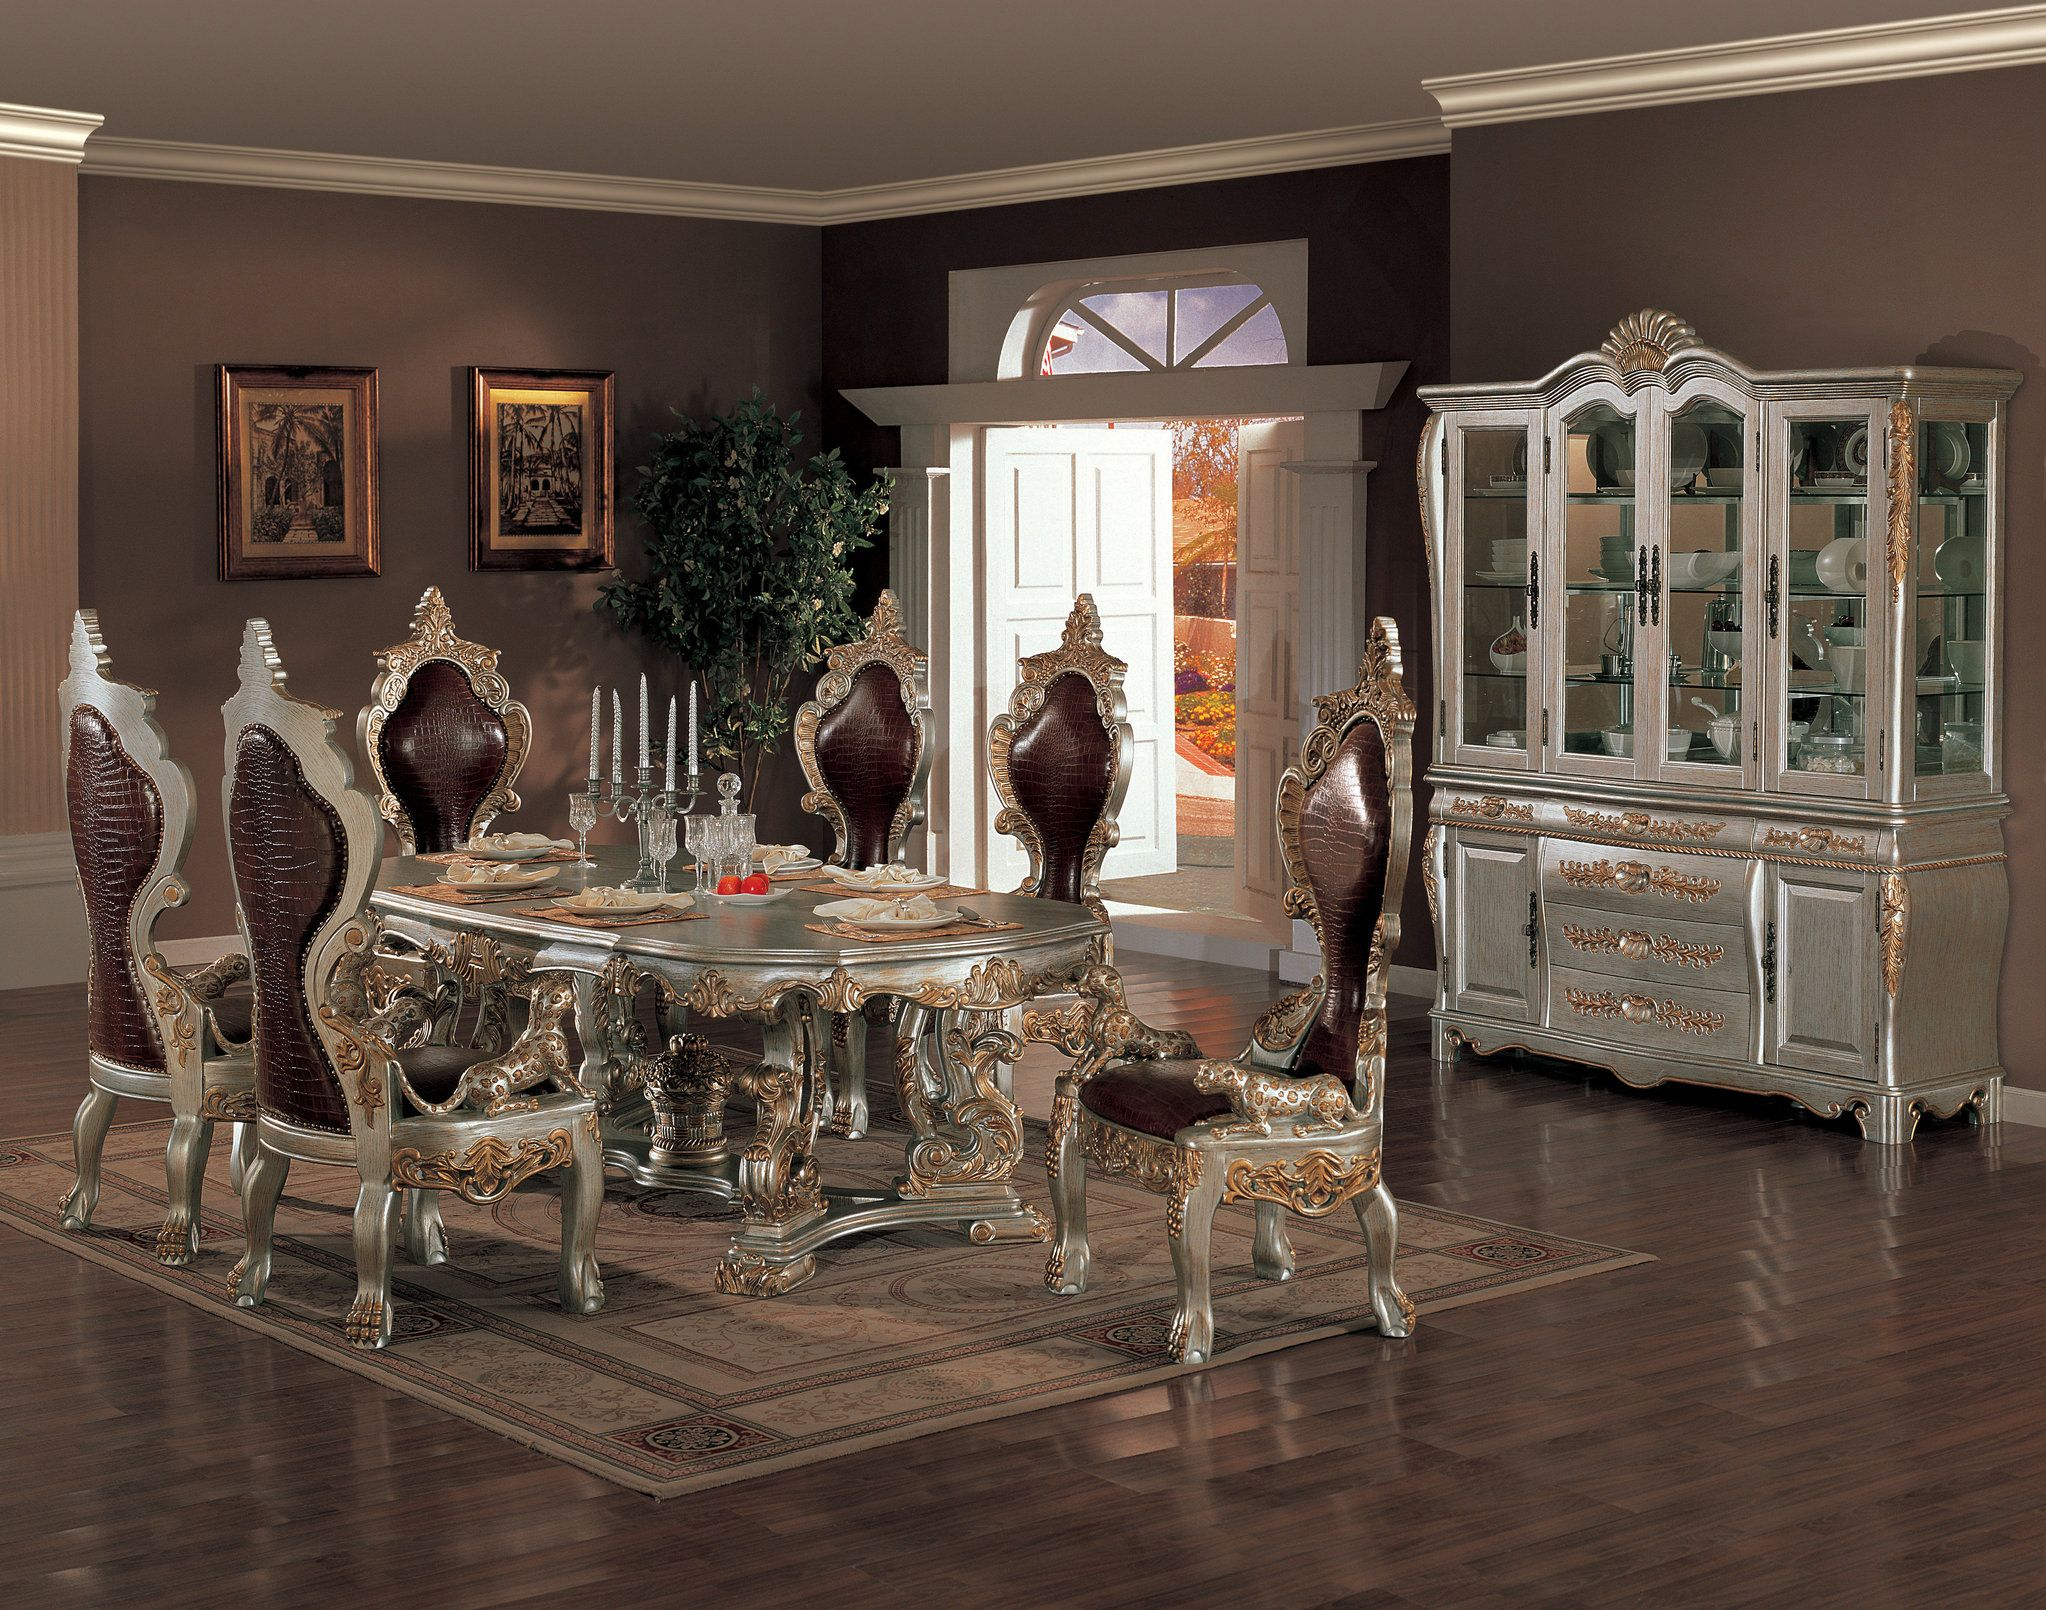 Dining room furniture buffet - Dining Room With Buffet Table Elegant And Ornate Wood Dining Set With Acanthus Leaf Details